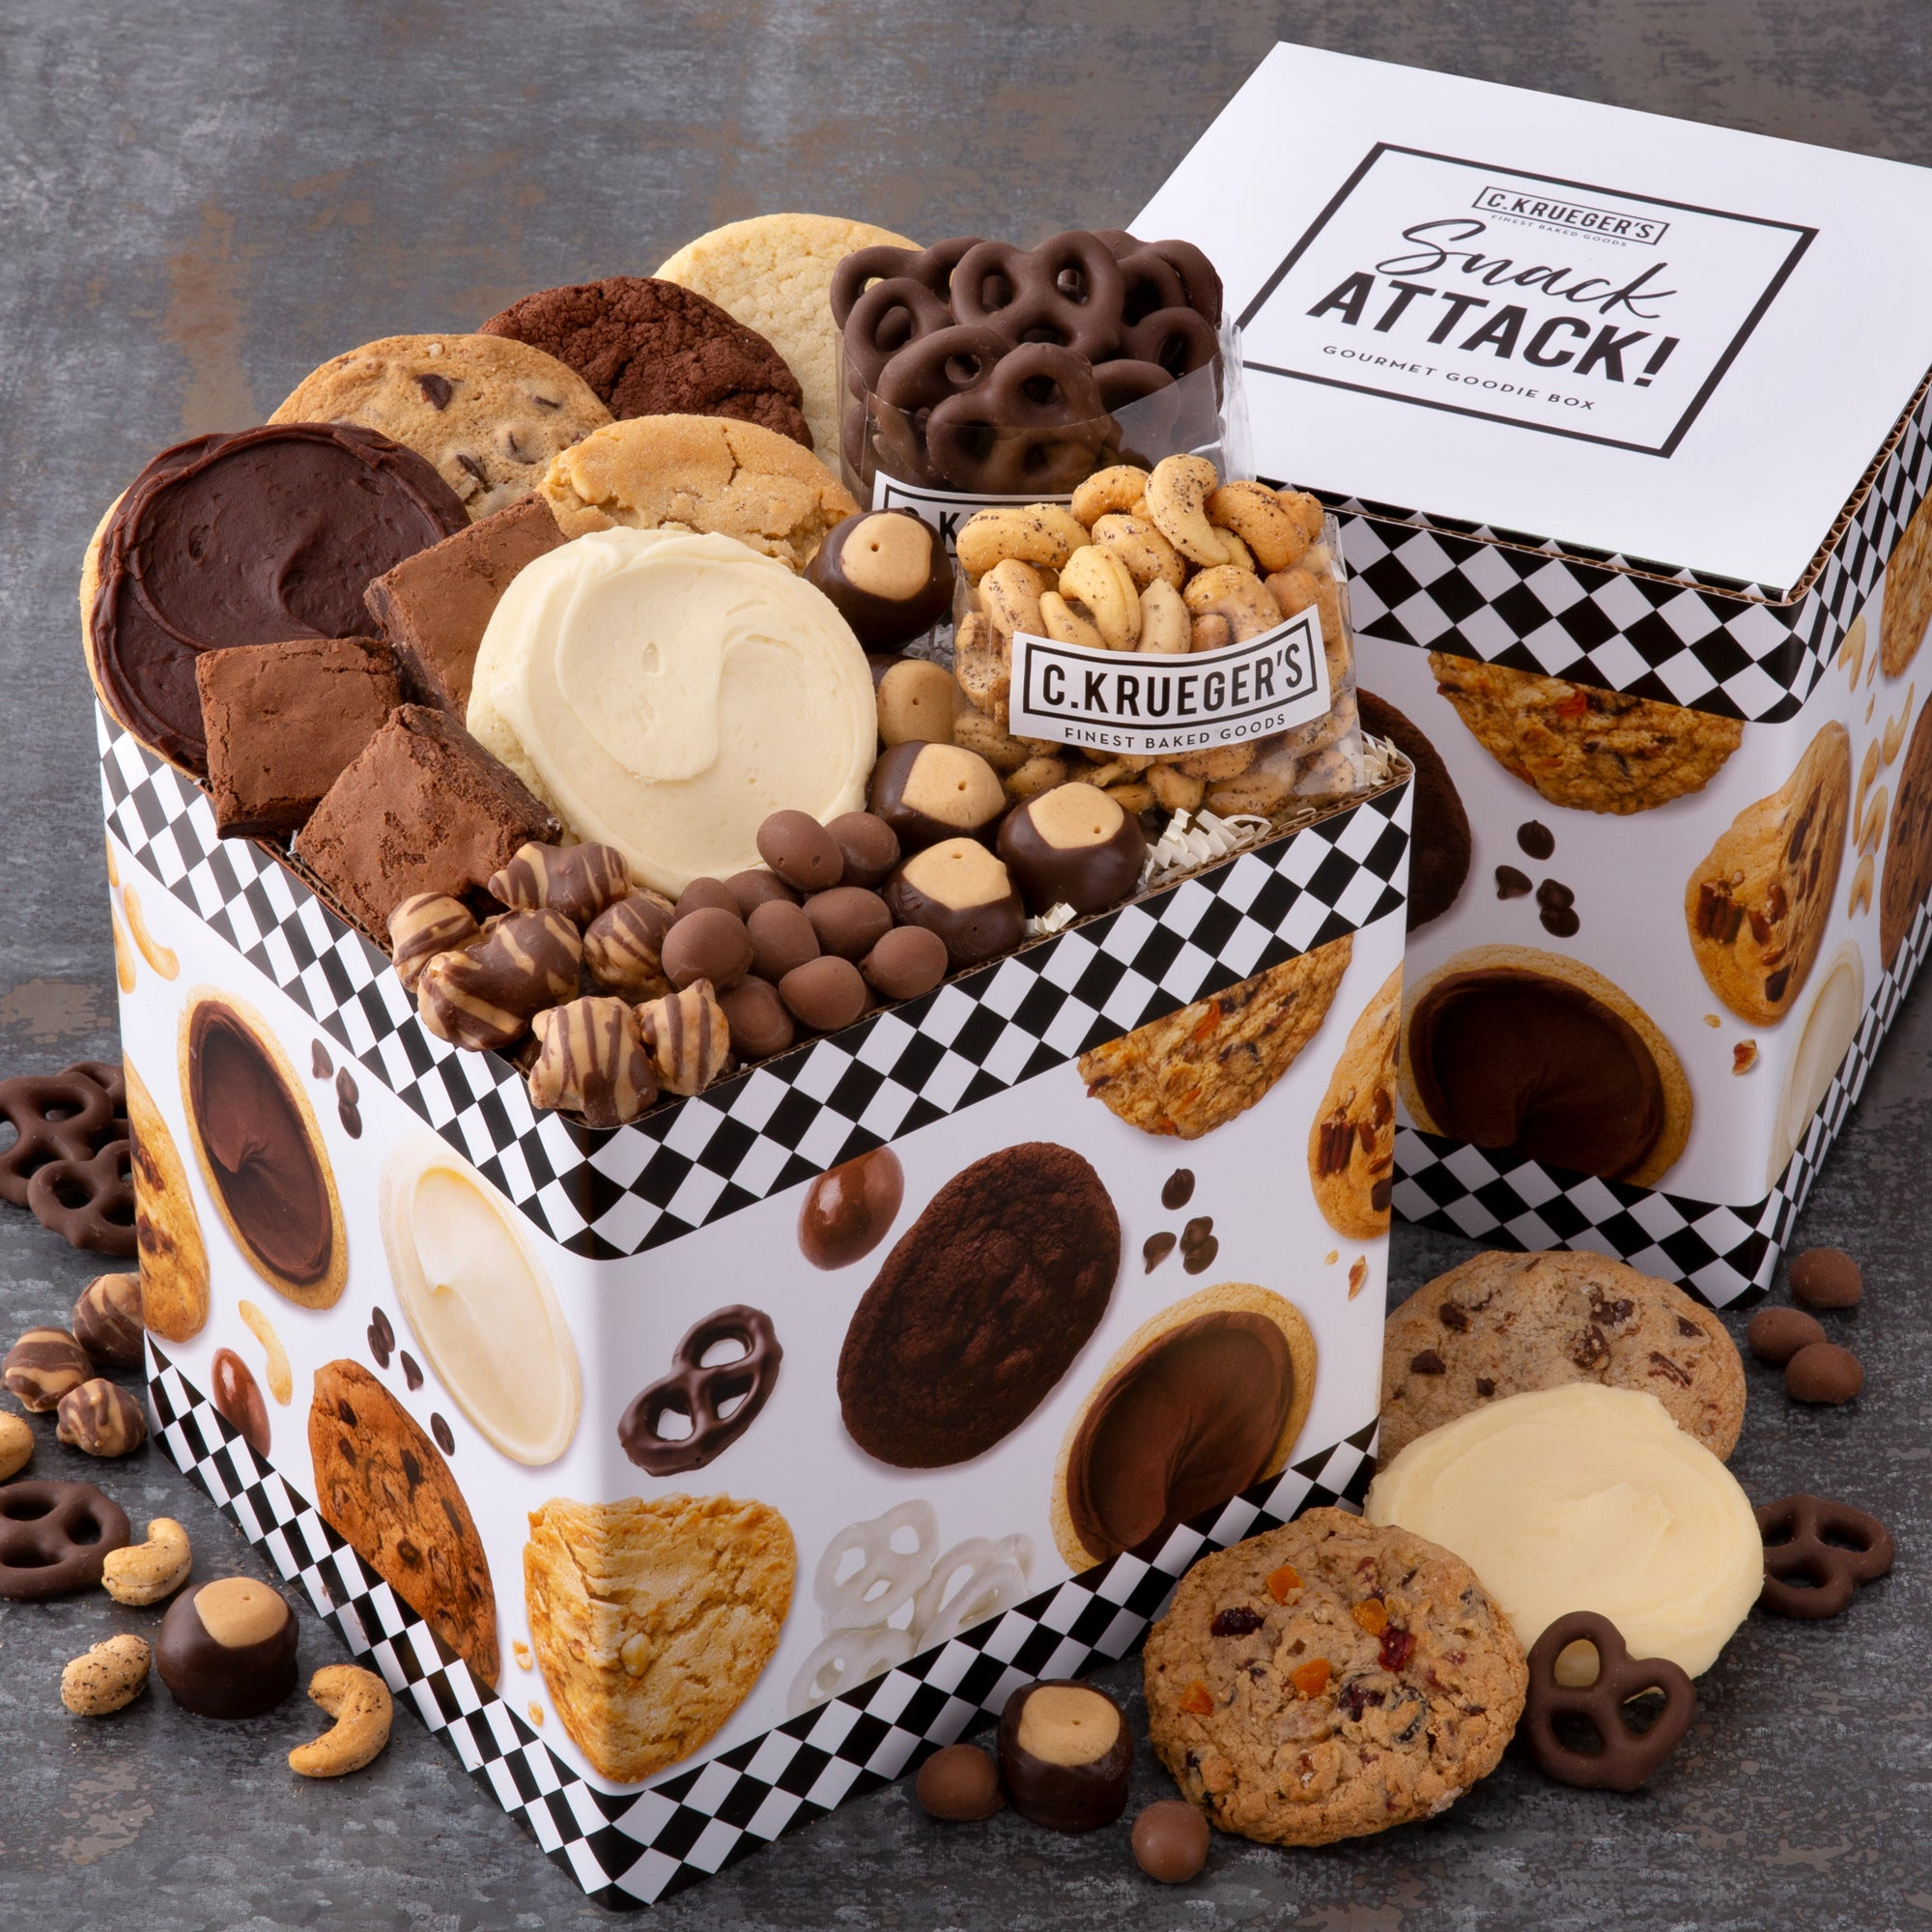 Snack Attack! Anytime Gourmet Goodie Box